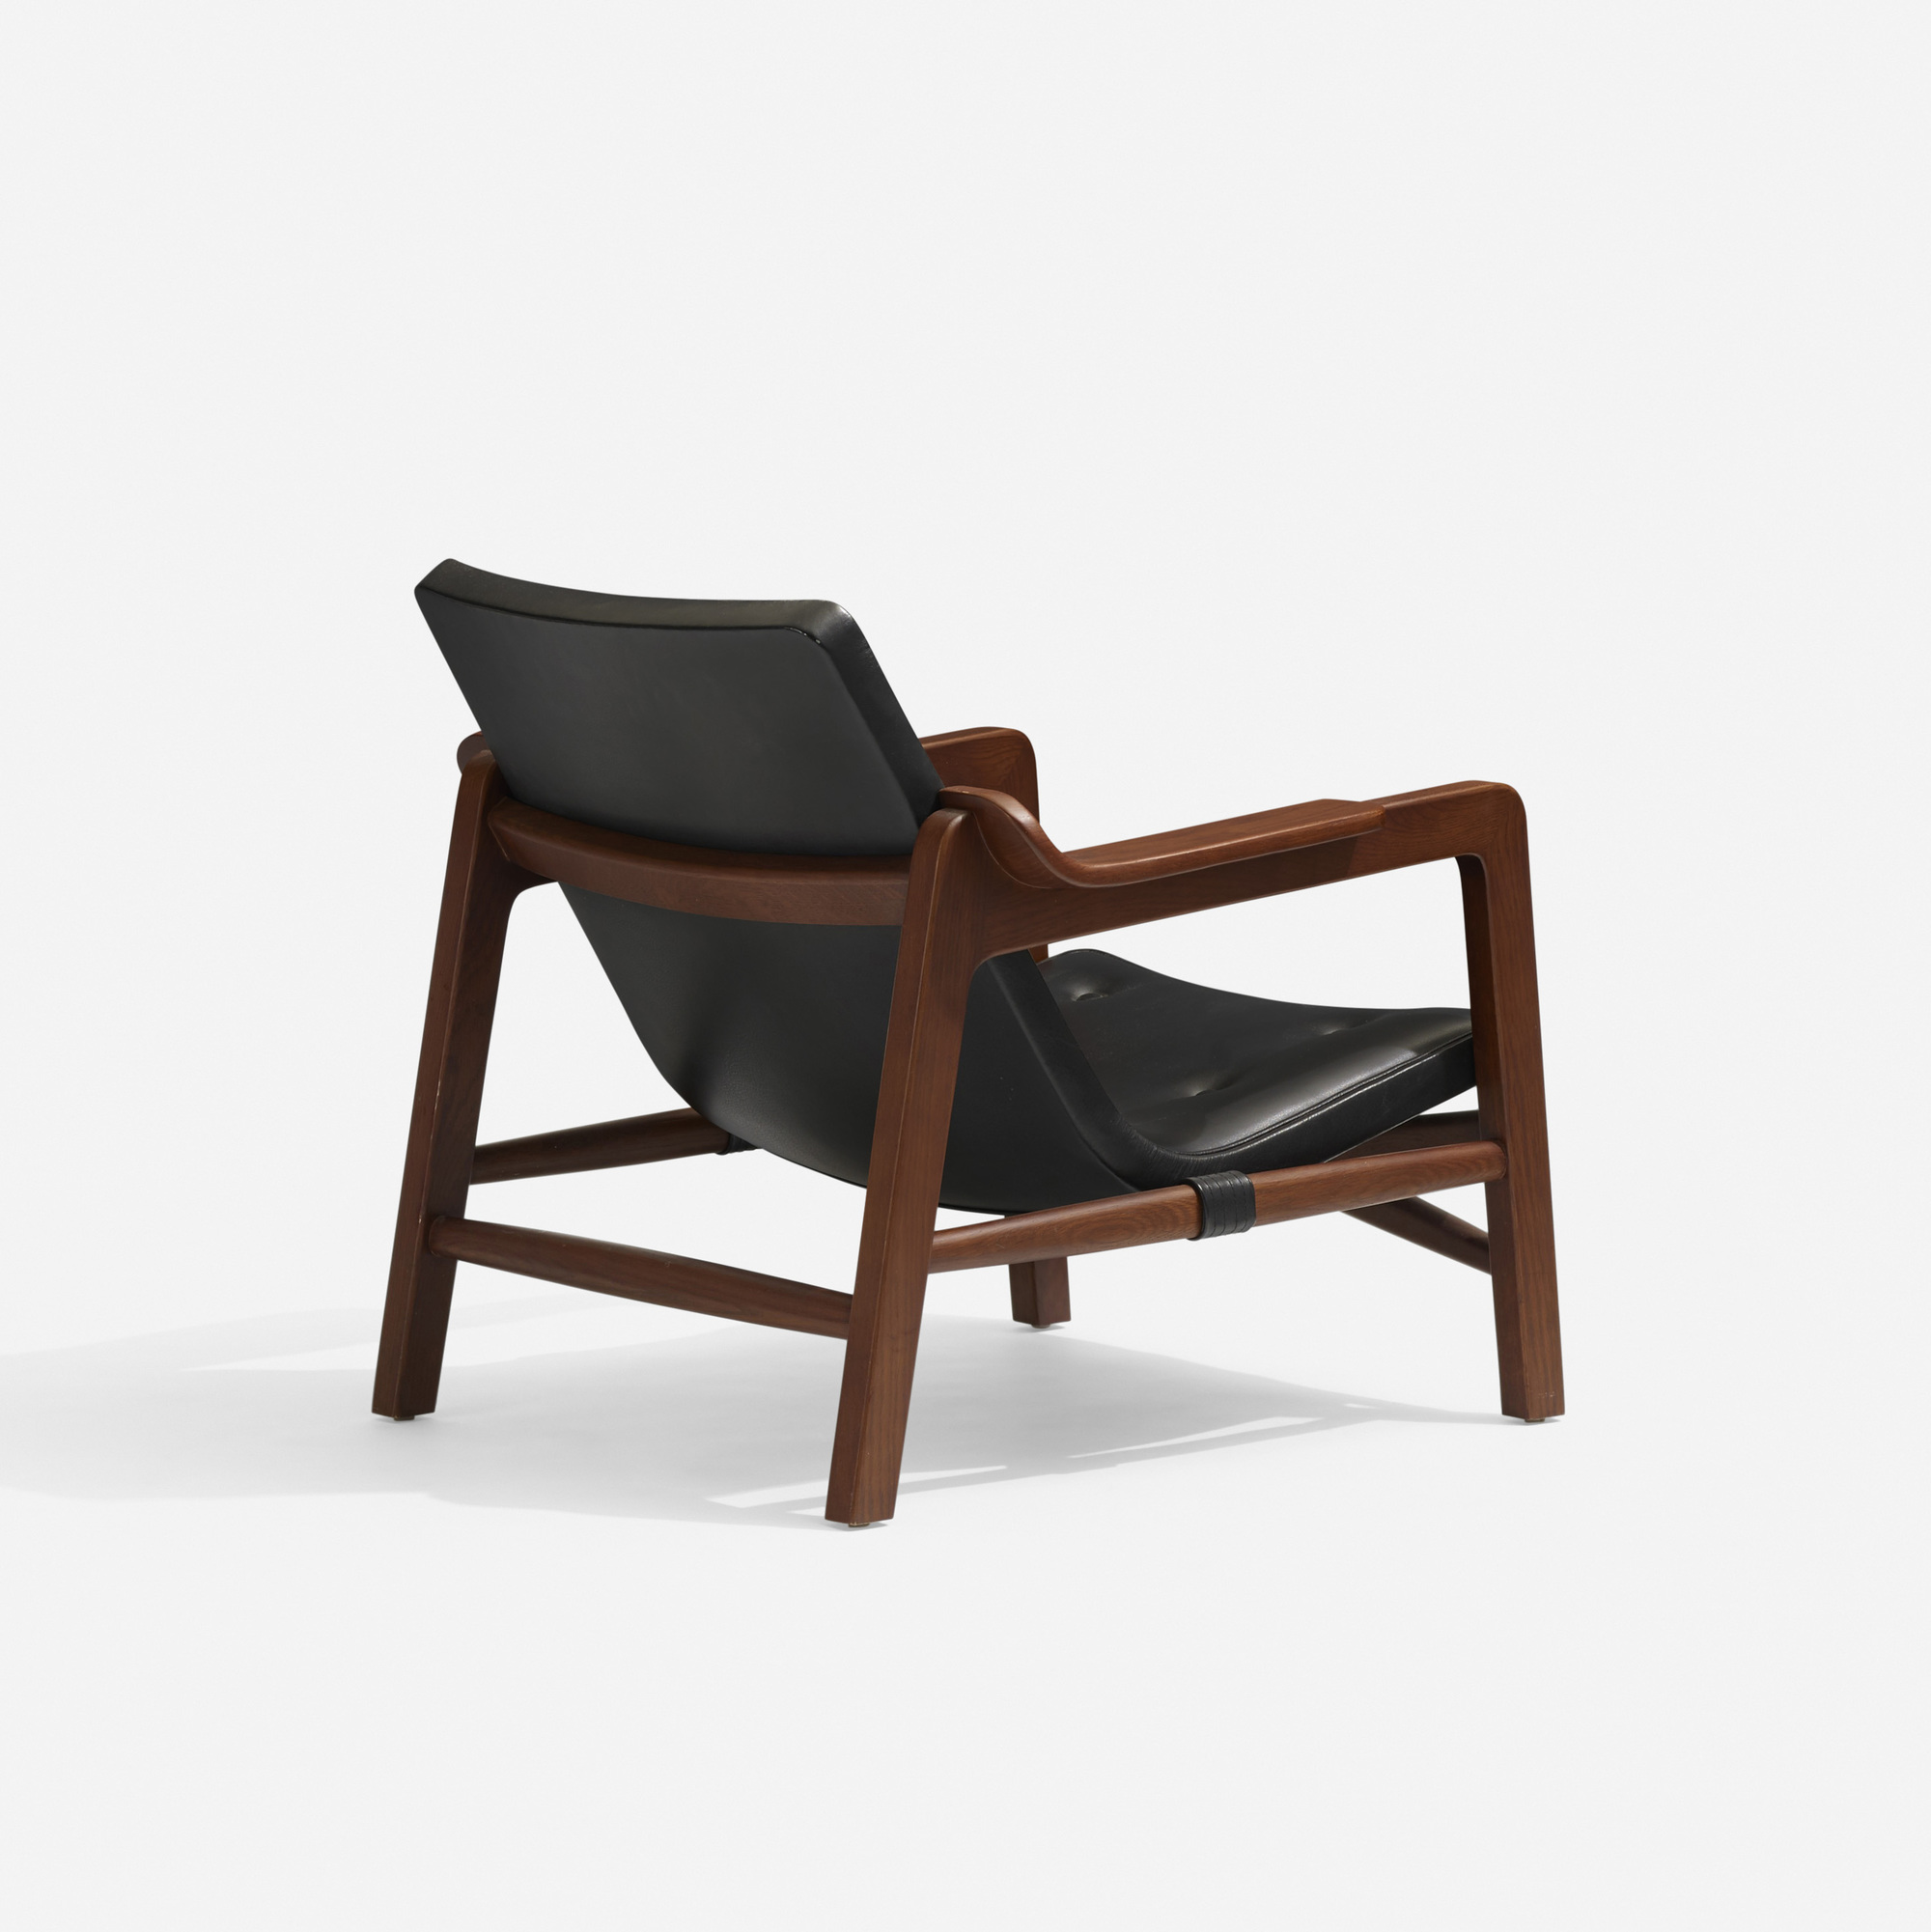 127: Edvard and Tove Kindt-Larsen / lounge chair (2 of 4)